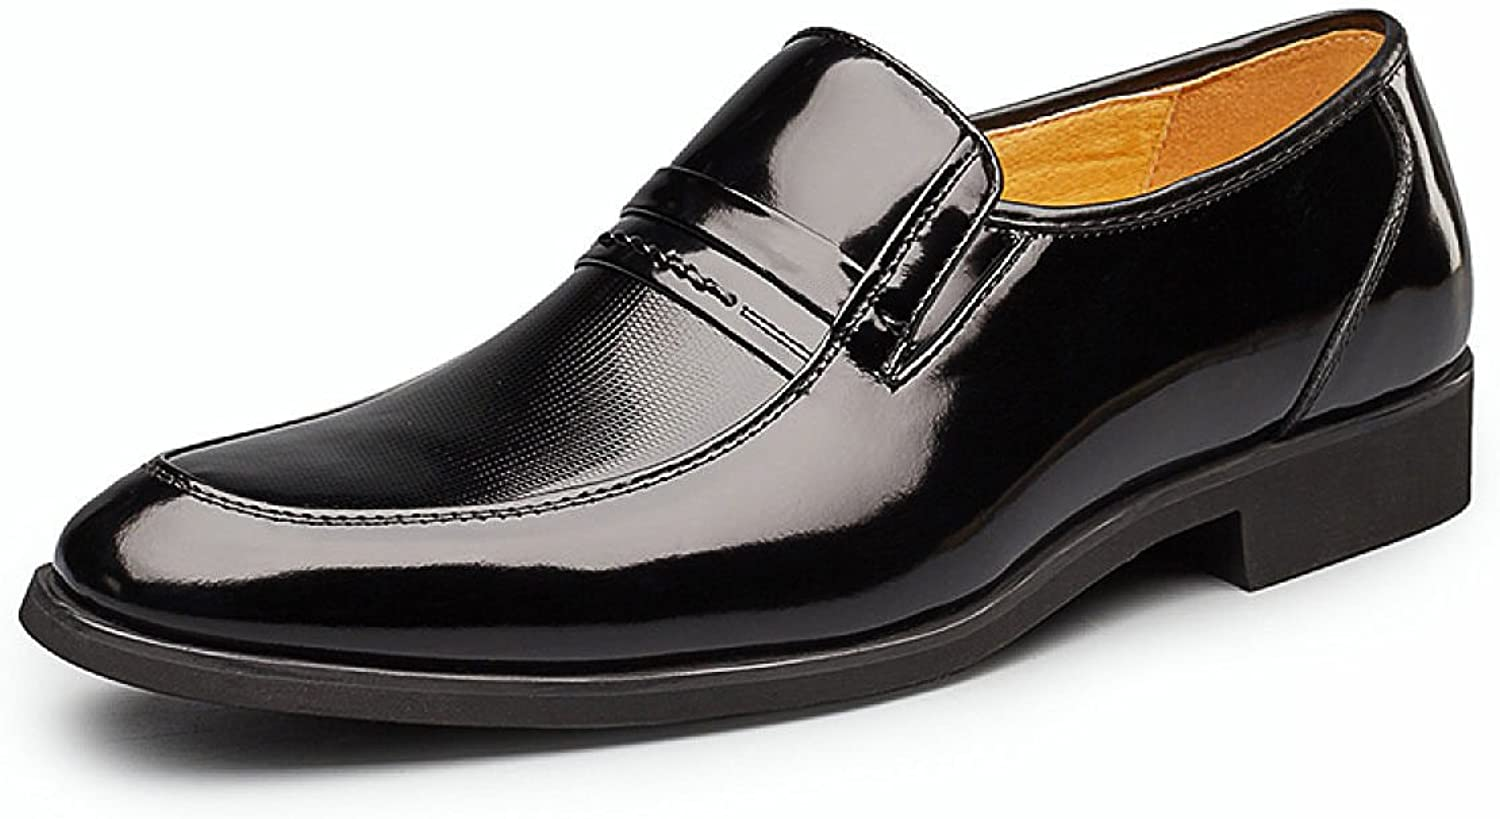 MUYII Oxfords Dress Leather shoes For Men Men's Plain Toe Business Loafer Paten shoes Casual Mens shoes